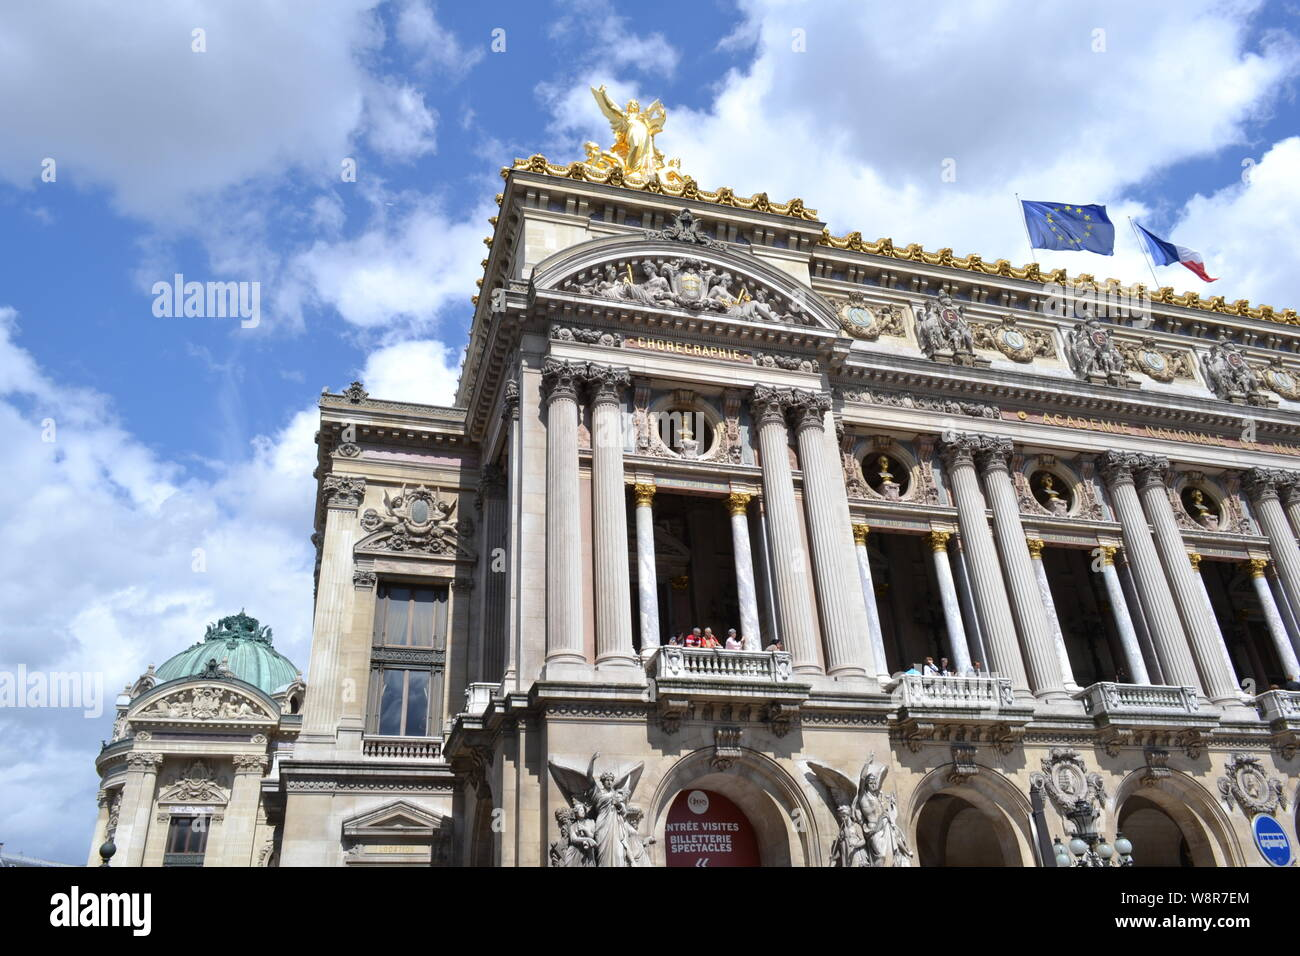 Paris/France - August 19, 2014: Facade of the Opera de Paris and National Academy of music with golden statues on the roof in a sunny weather under th Stock Photo